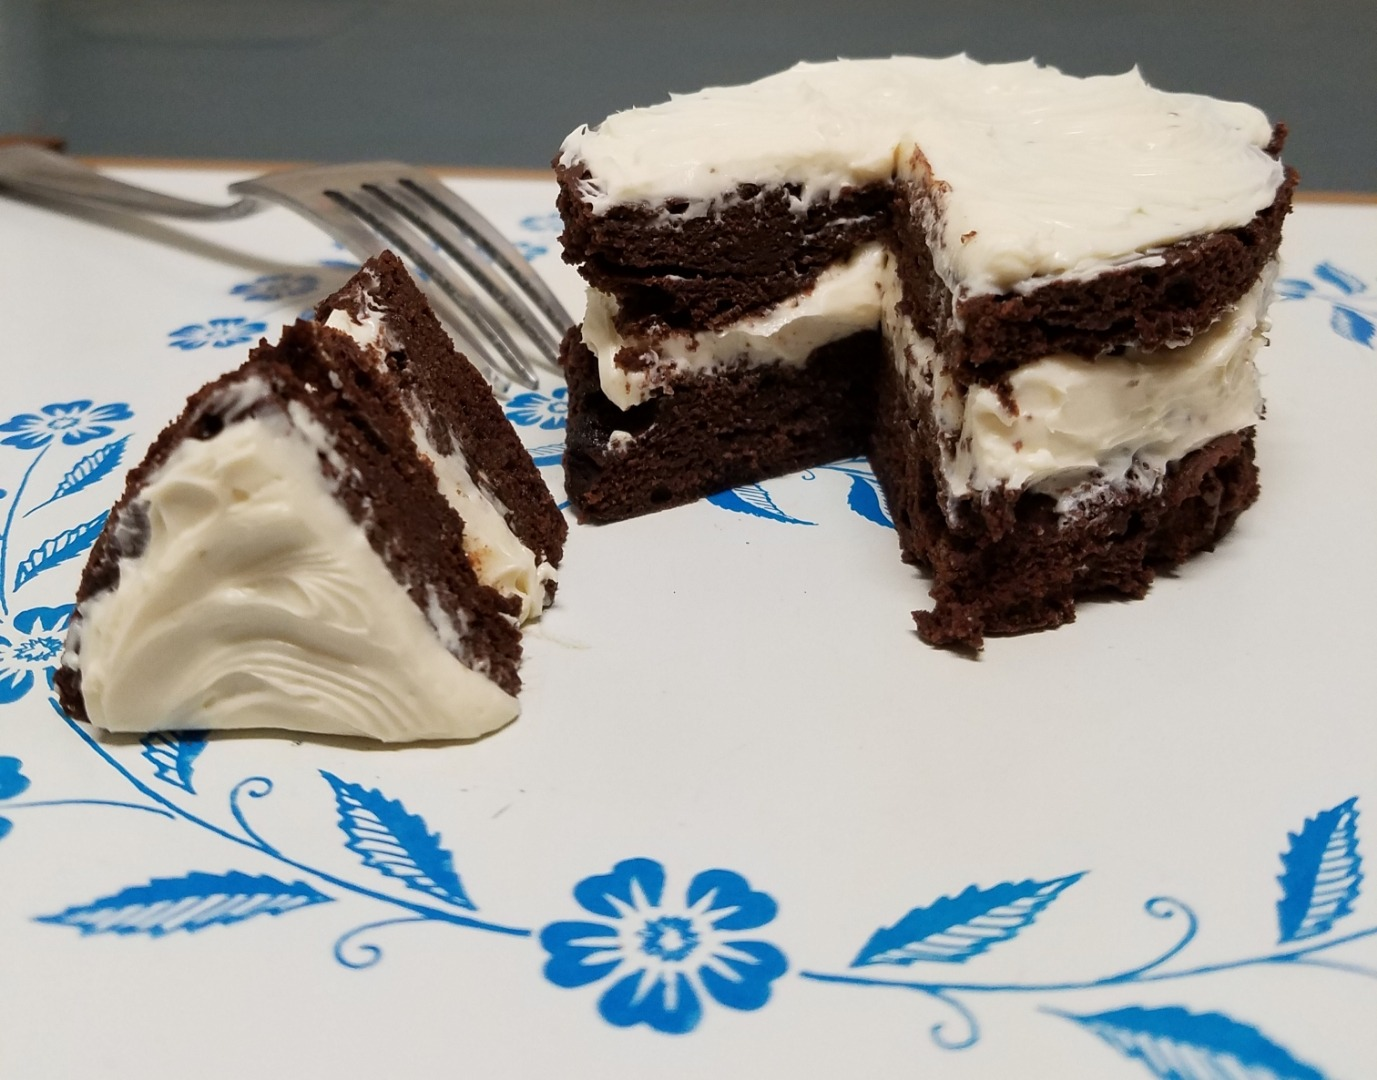 CardioMenderMD chocolate cake with frosting